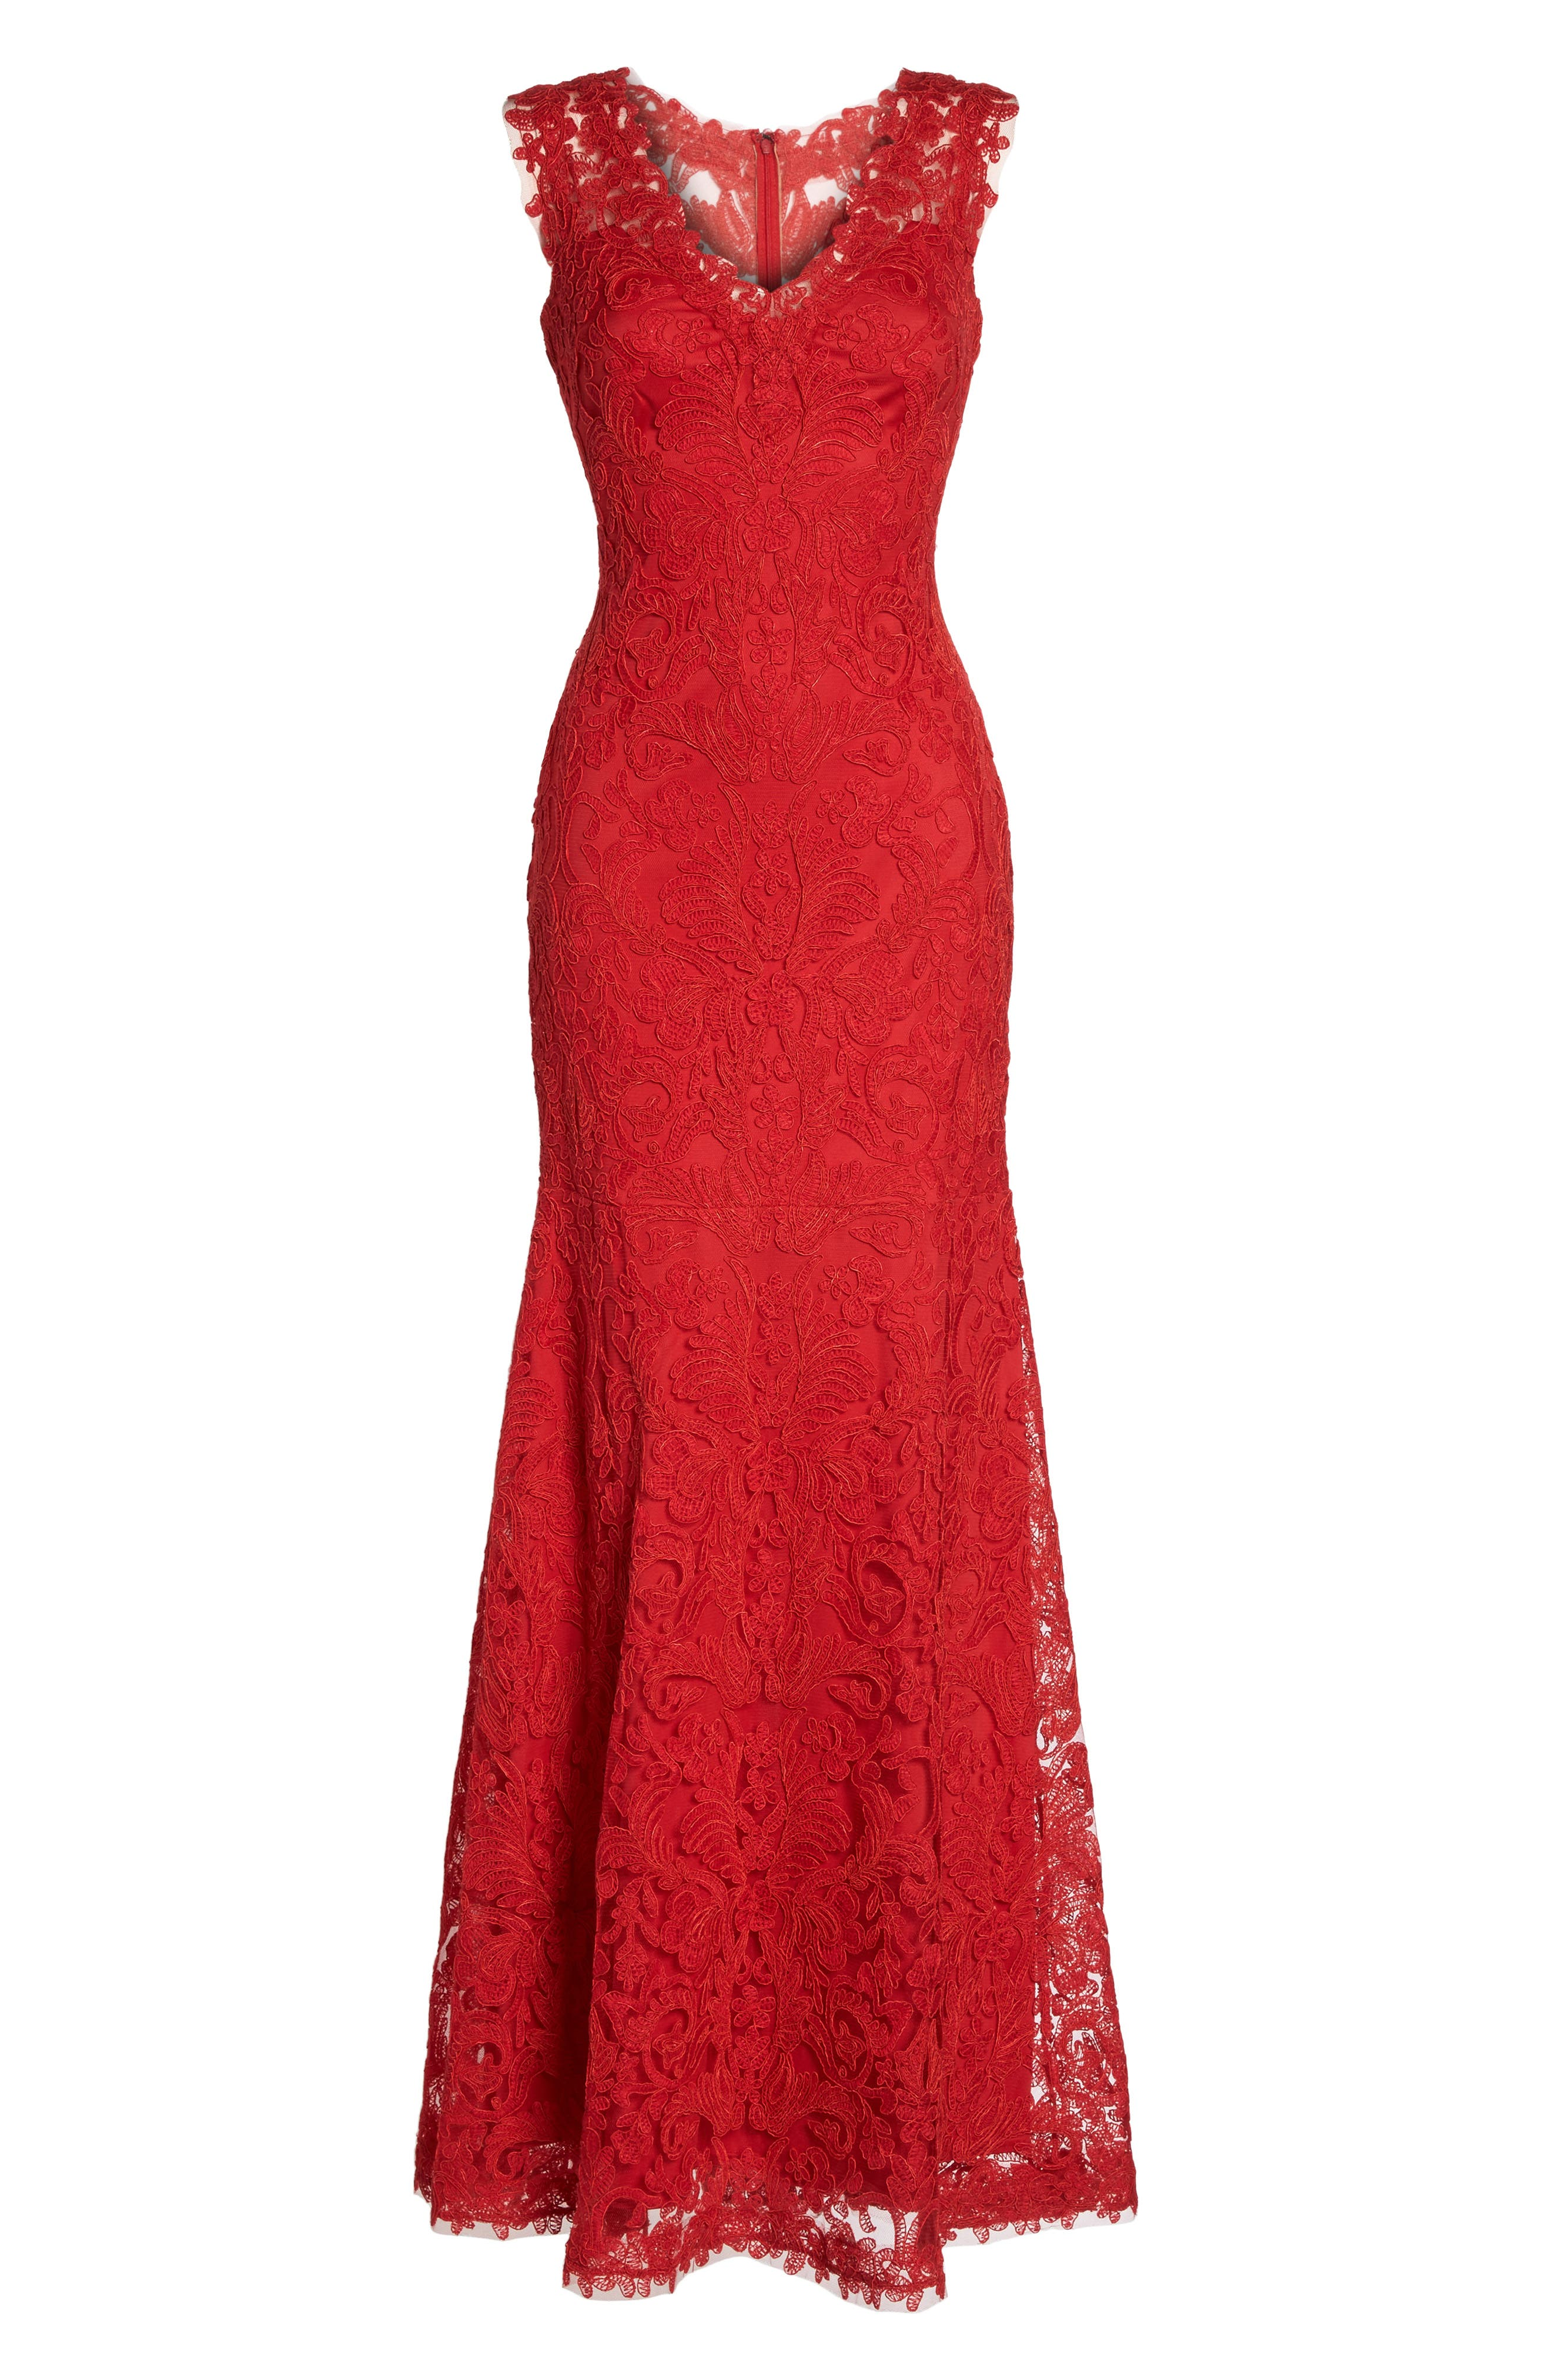 Kelly Embroidered Mermaid Gown,                             Alternate thumbnail 6, color,                             611